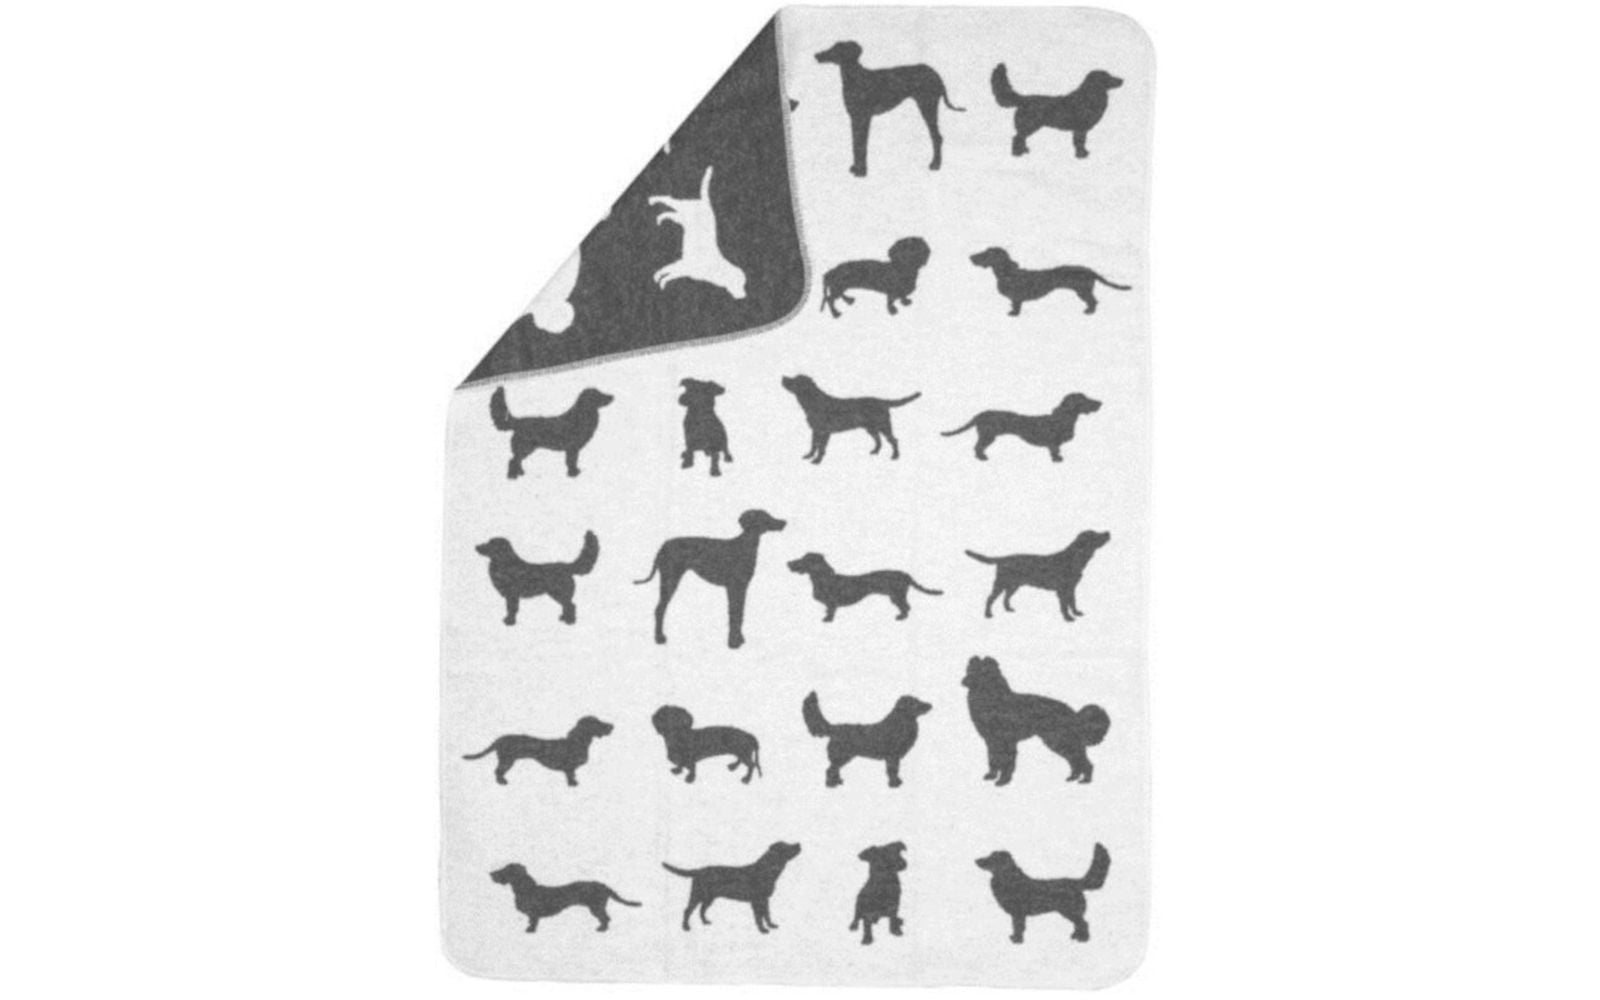 Blanket - Pet - All Over Dogs-1